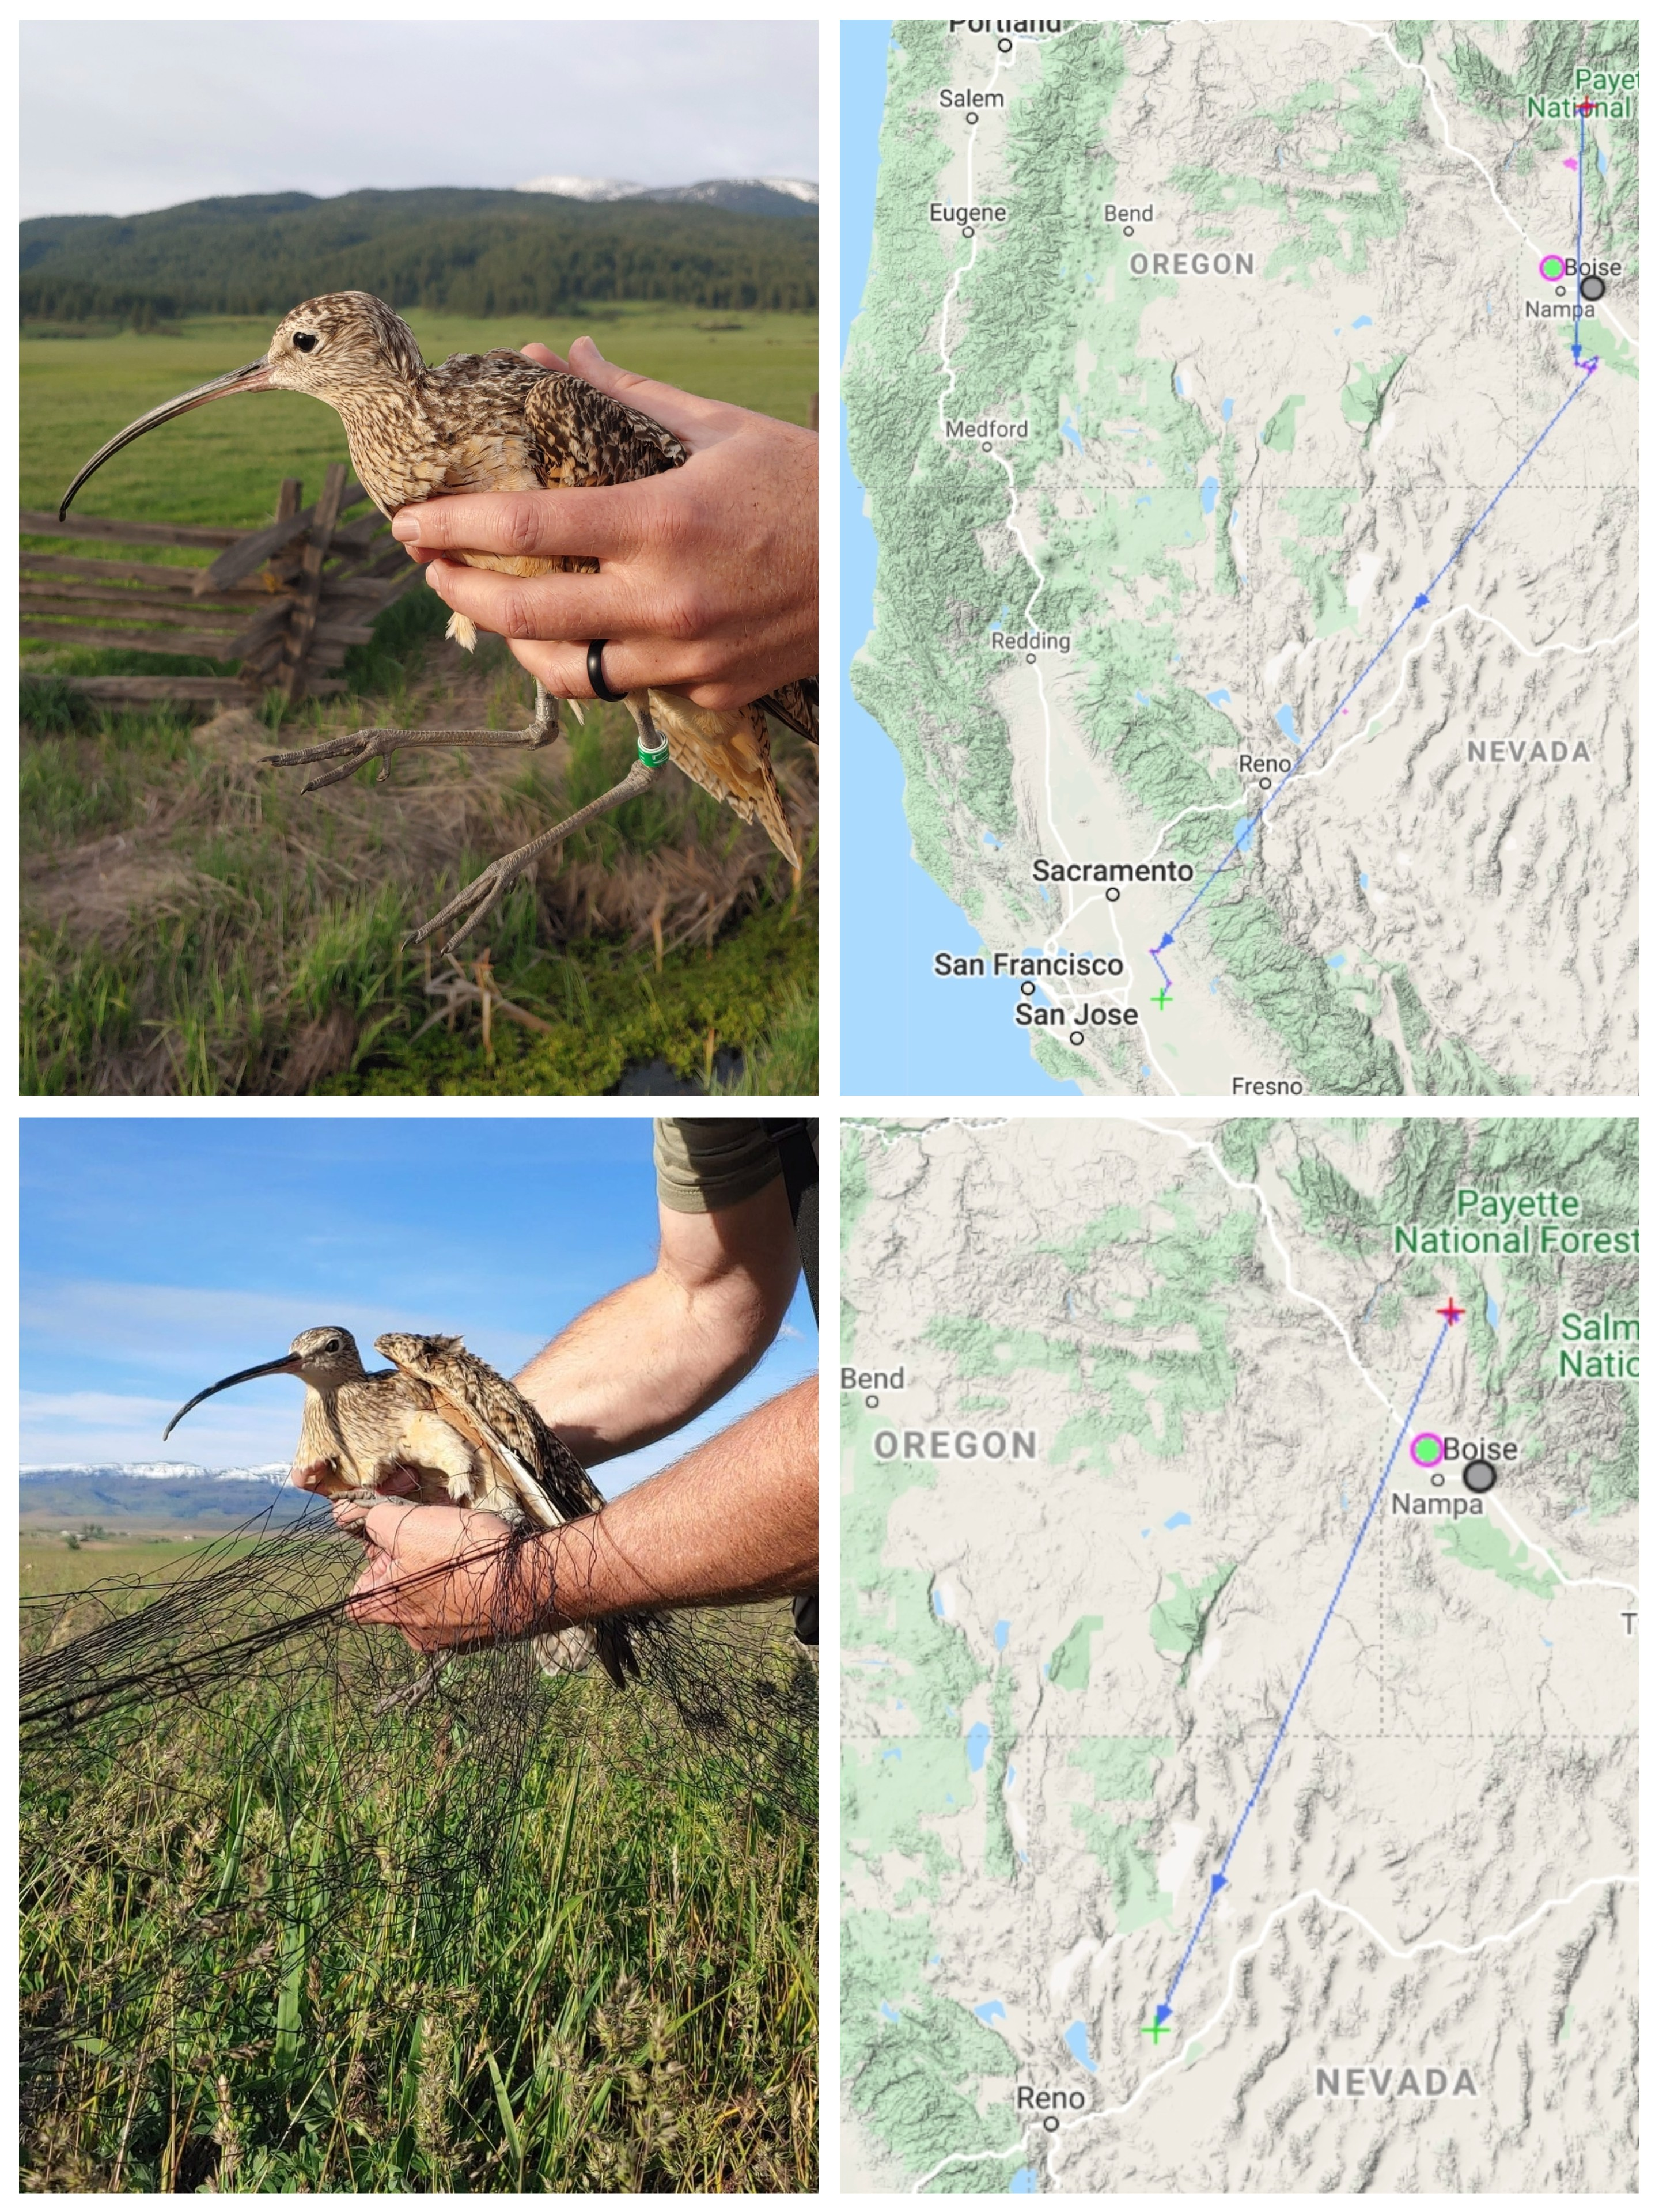 photo collage of two curlews next to the map of their respective movements. The top curlew, Neil's, map shows a journey from Idaho to the central valley of California. Dozer's map shows a journey from Idaho to a location northeast of Reno, Nevada.